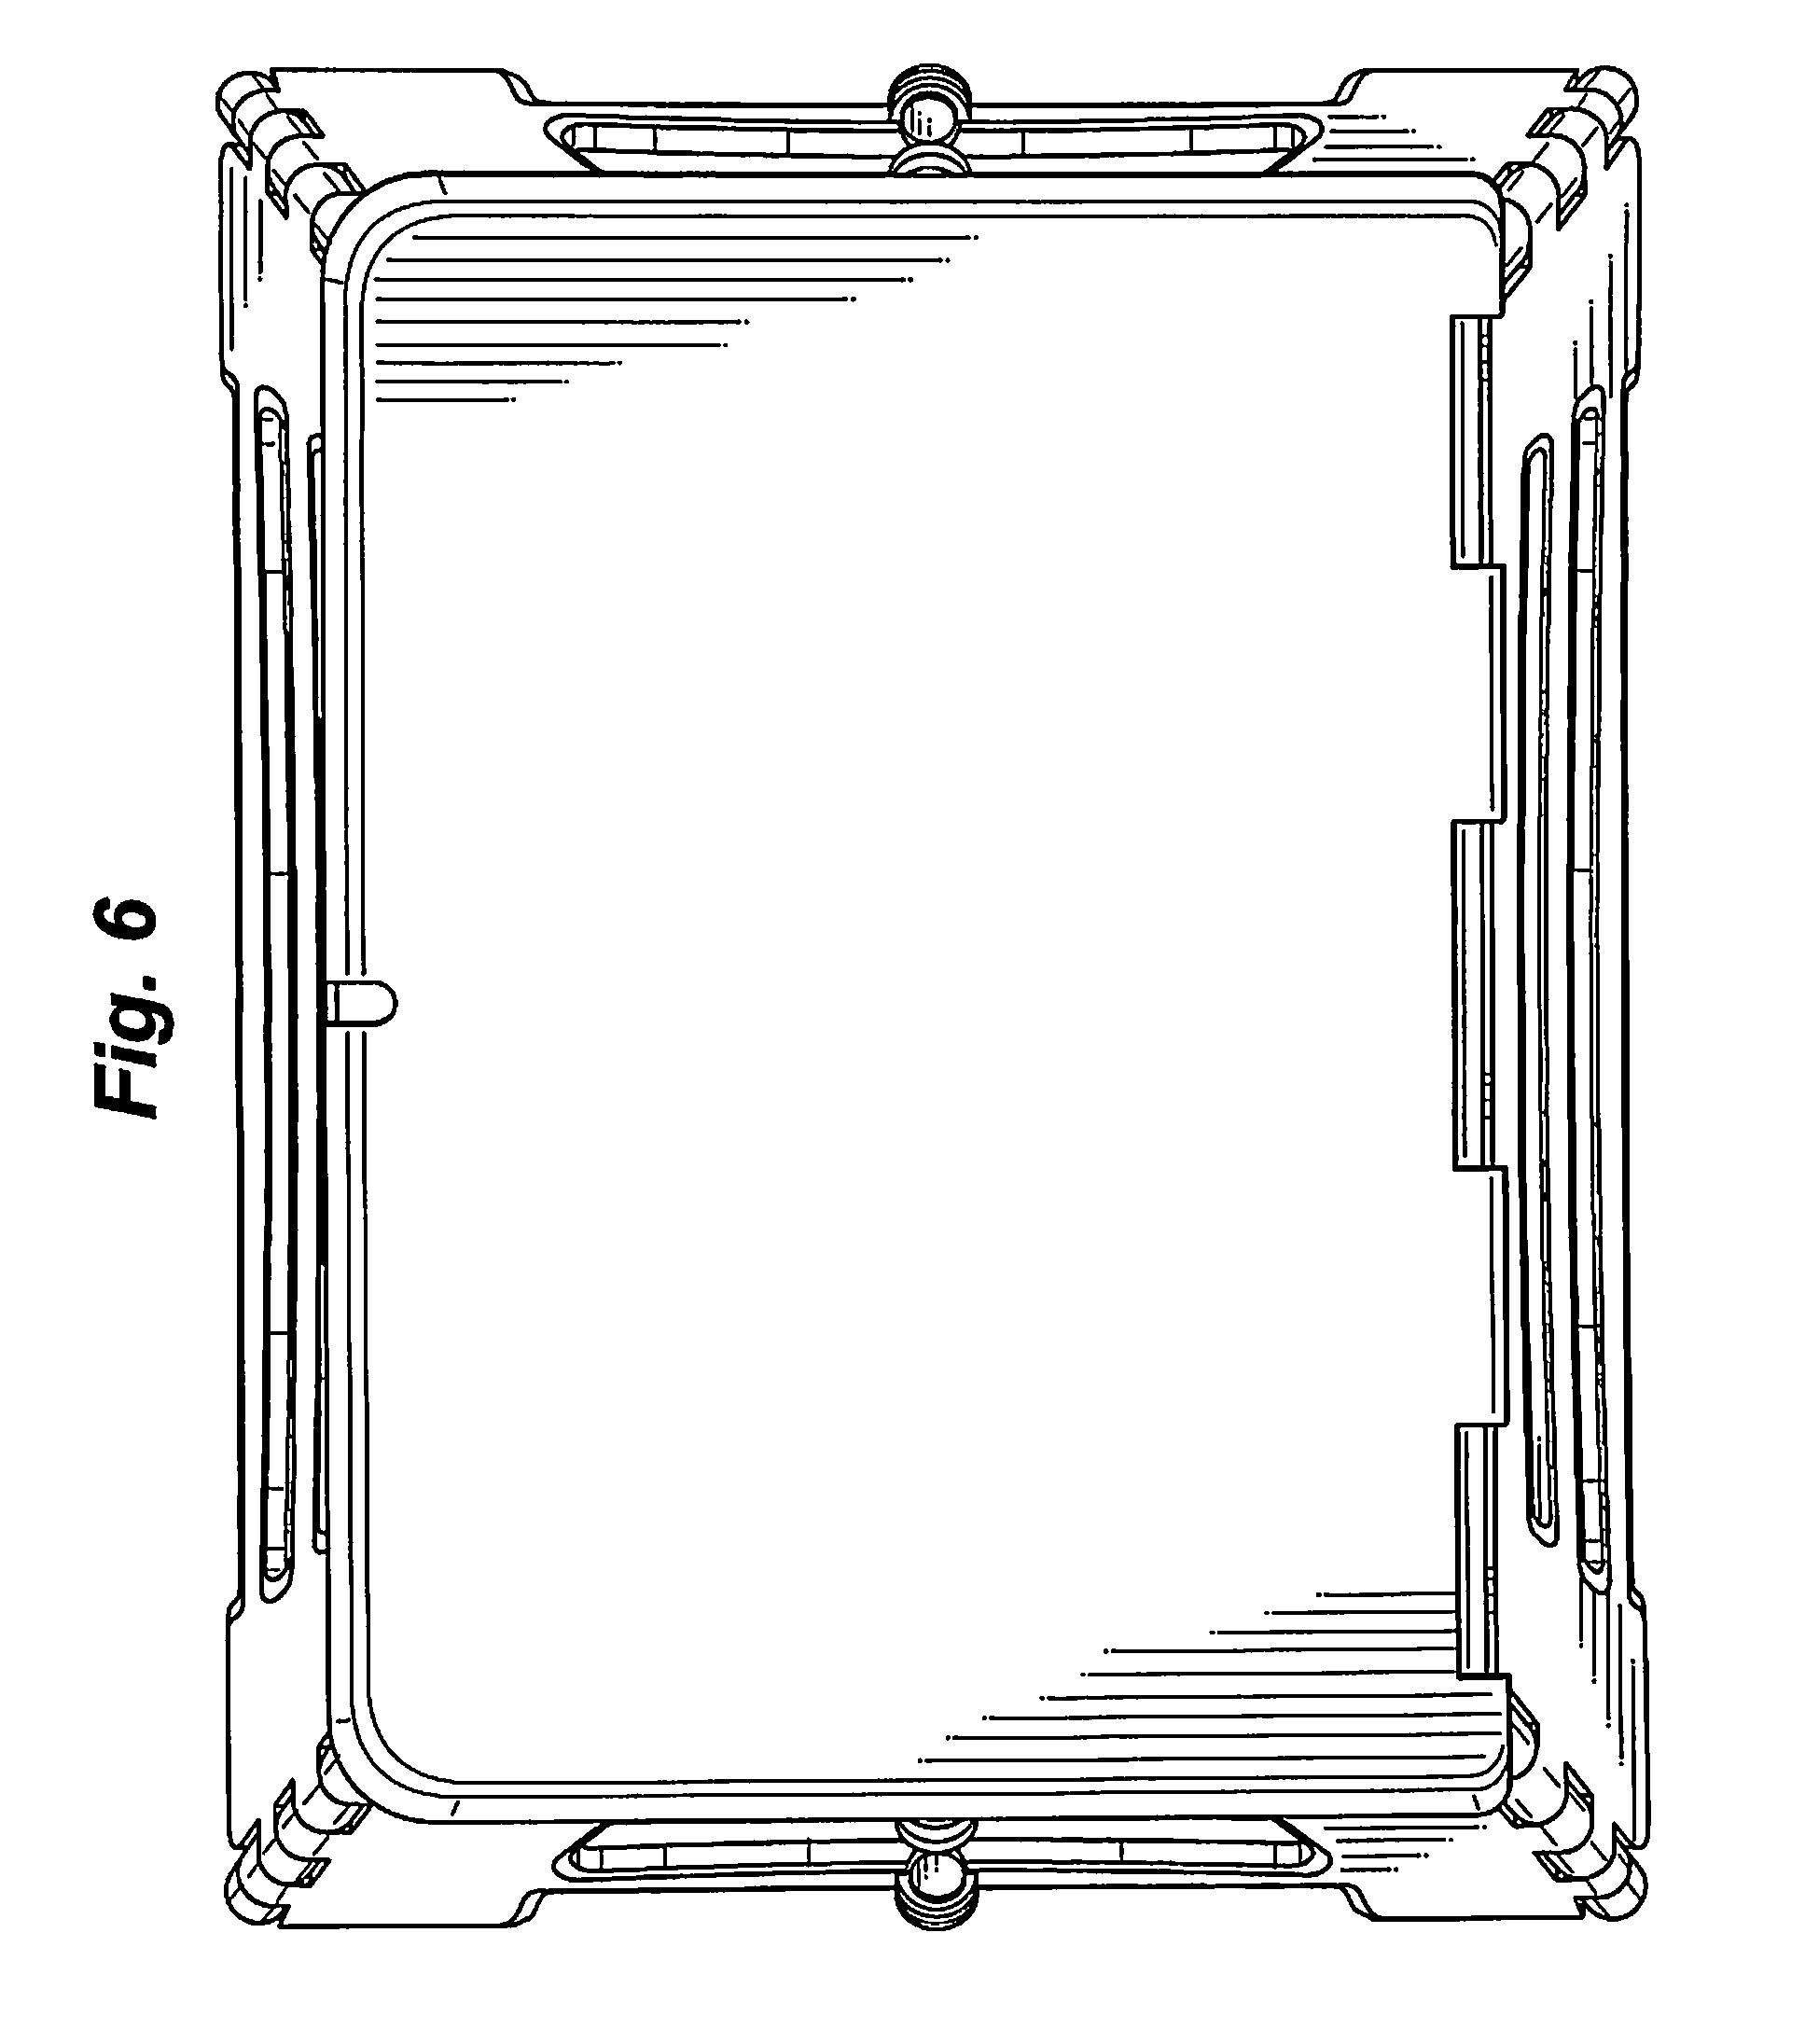 Patent Usd710031 Step Stool Google Patents